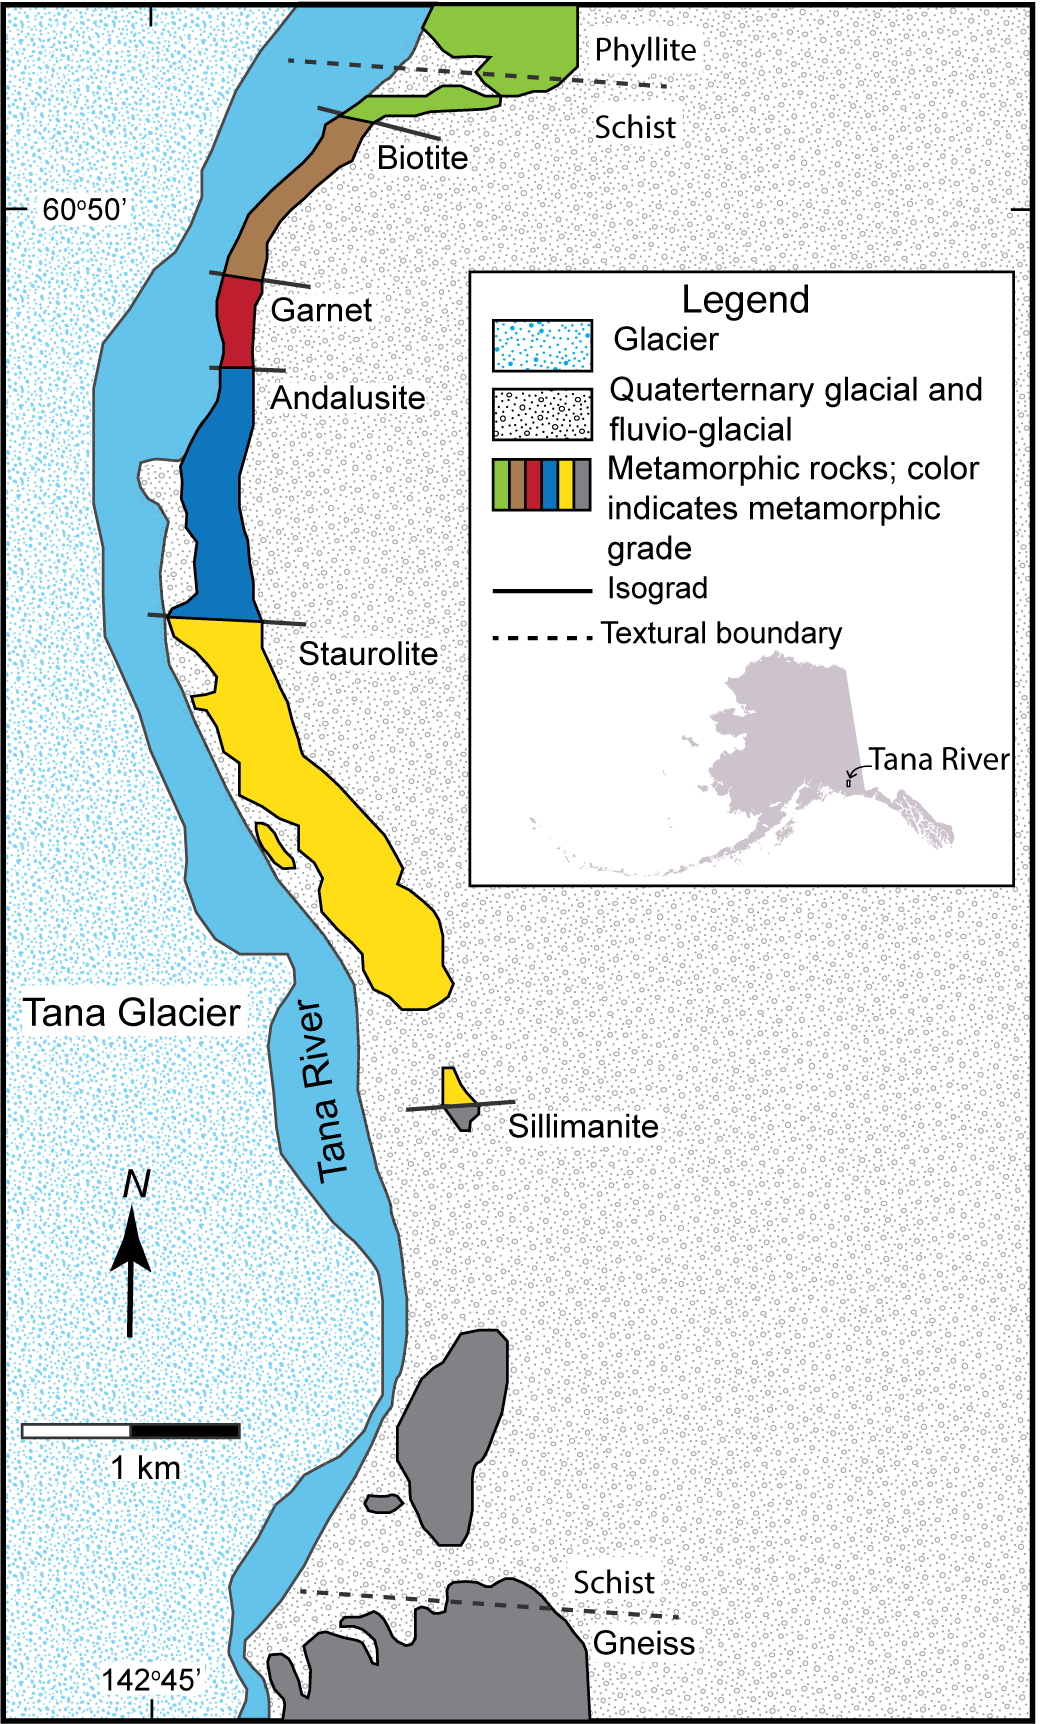 Map of metamorphic zones in southern Alaska along the Tana River